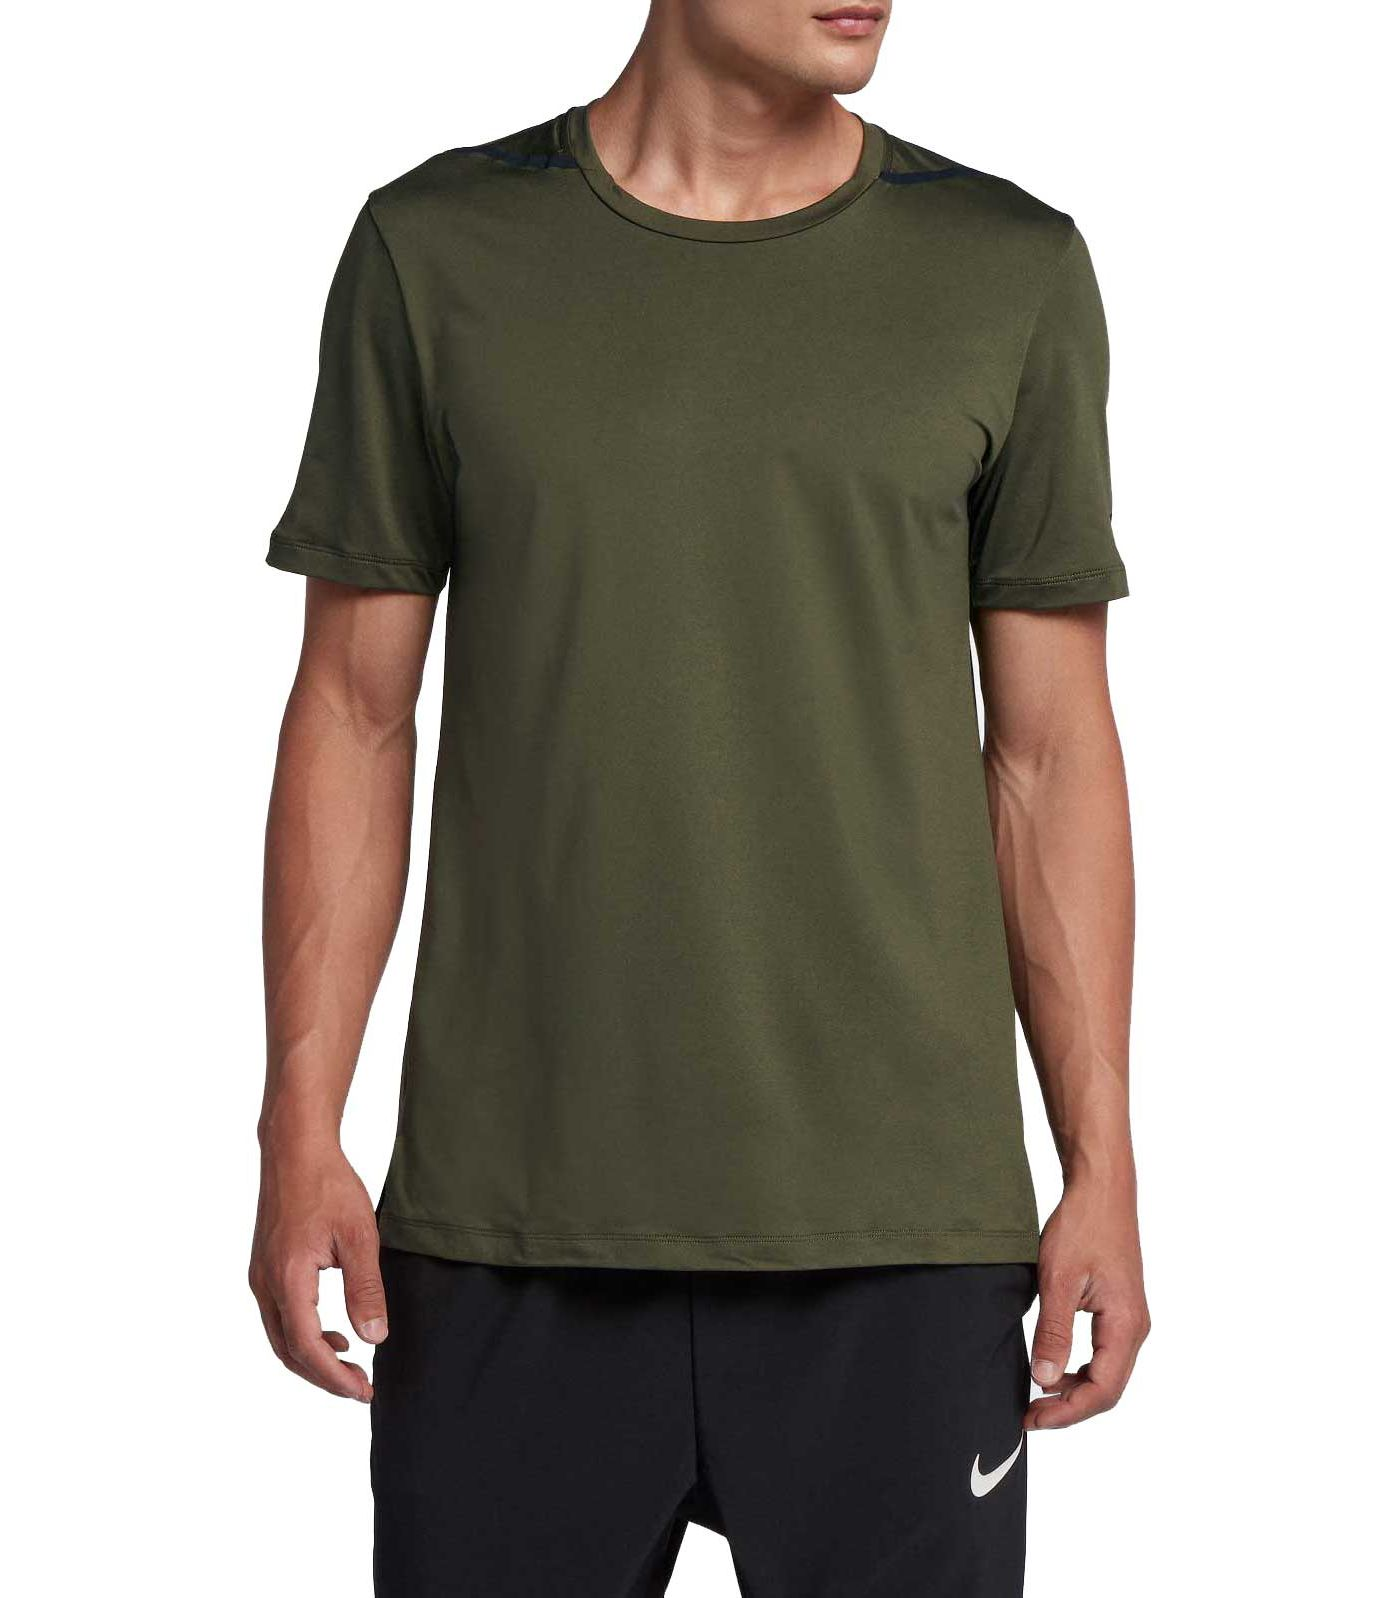 Nike Men's NTK Dry Max Training Tee